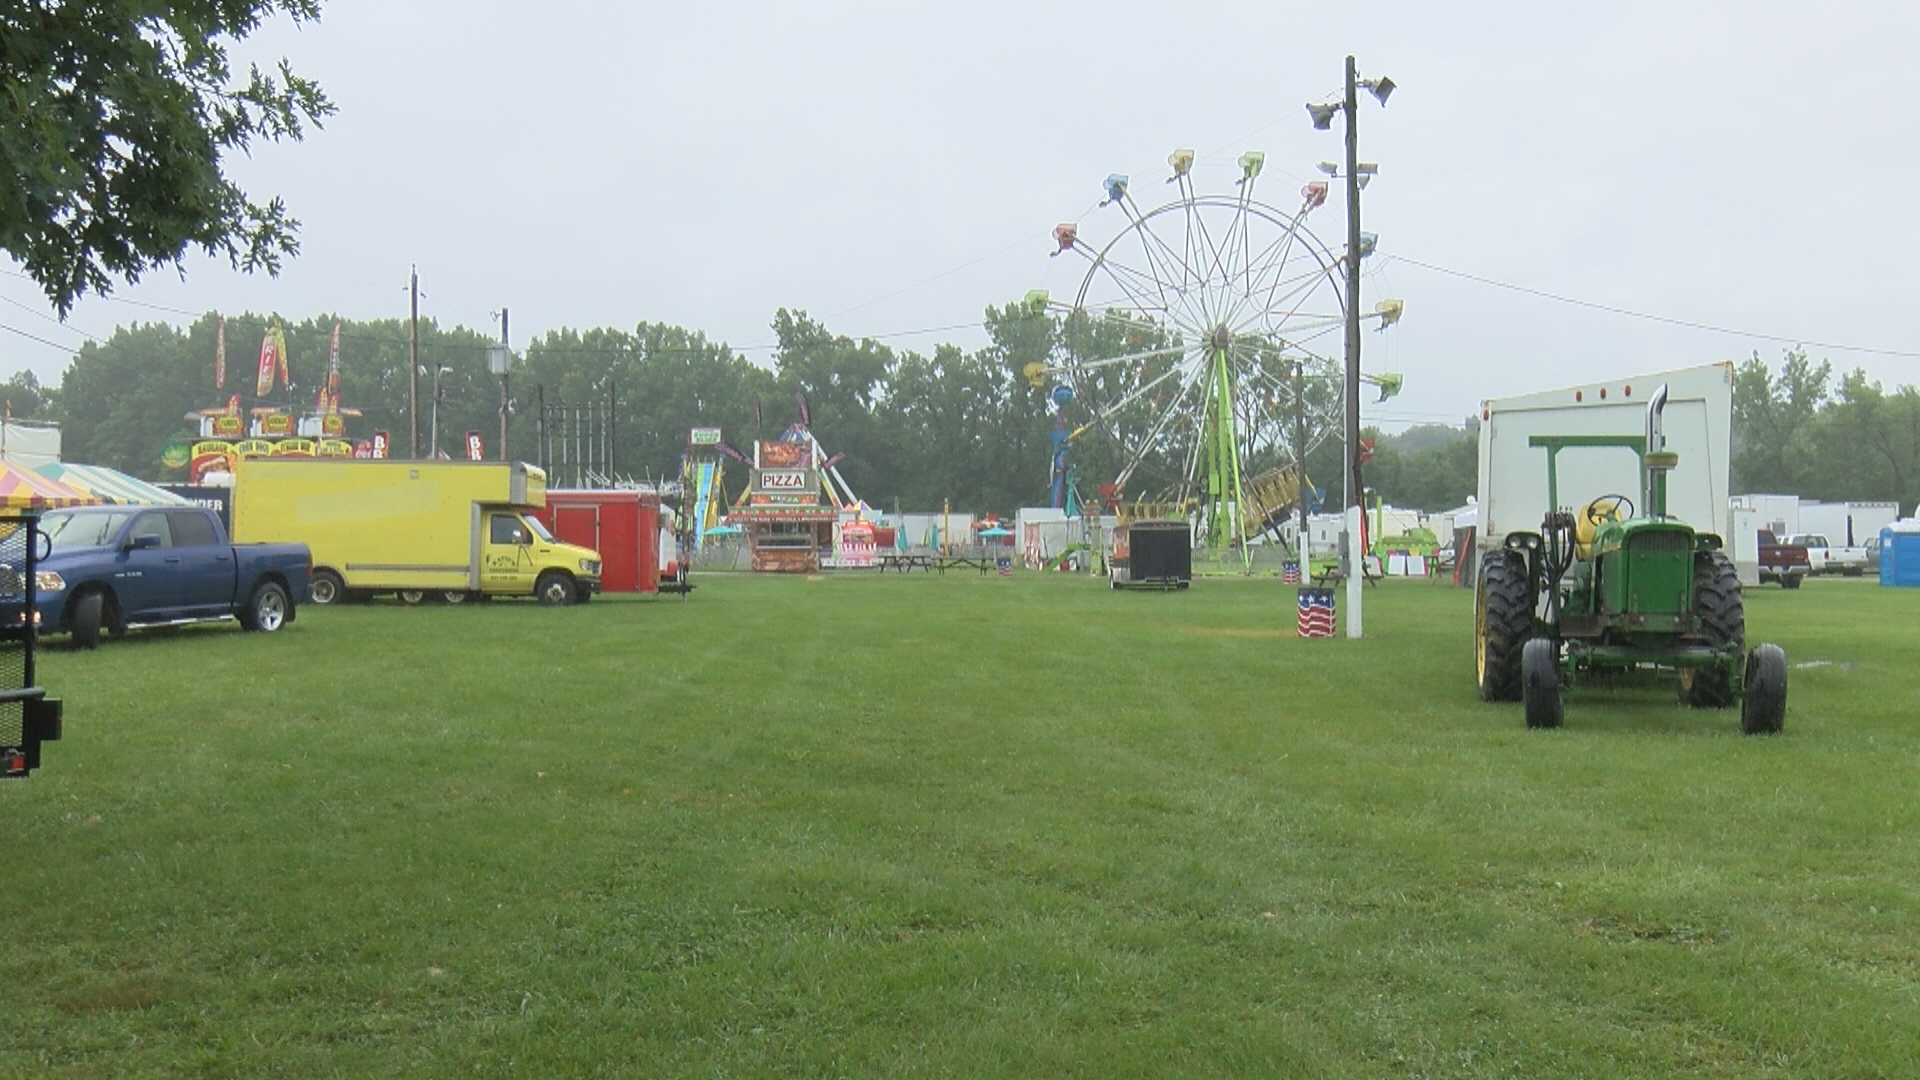 vermilion county fair_1529617152676.jpg.jpg